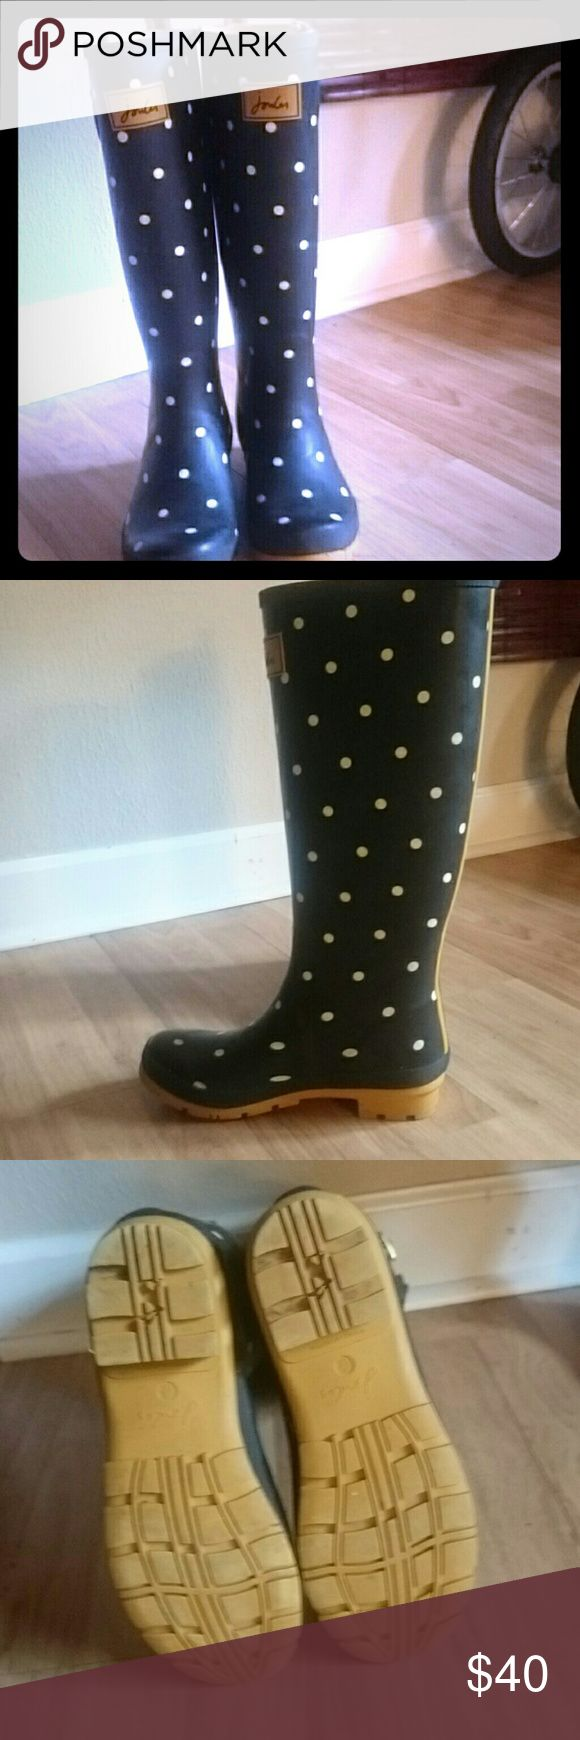 Joules size 8 wellies/ rain boots Brand new worn once Joules rain boots. They are black and gold with white polka dots. Very cute but were too big for me. Joules  Shoes Winter & Rain Boots